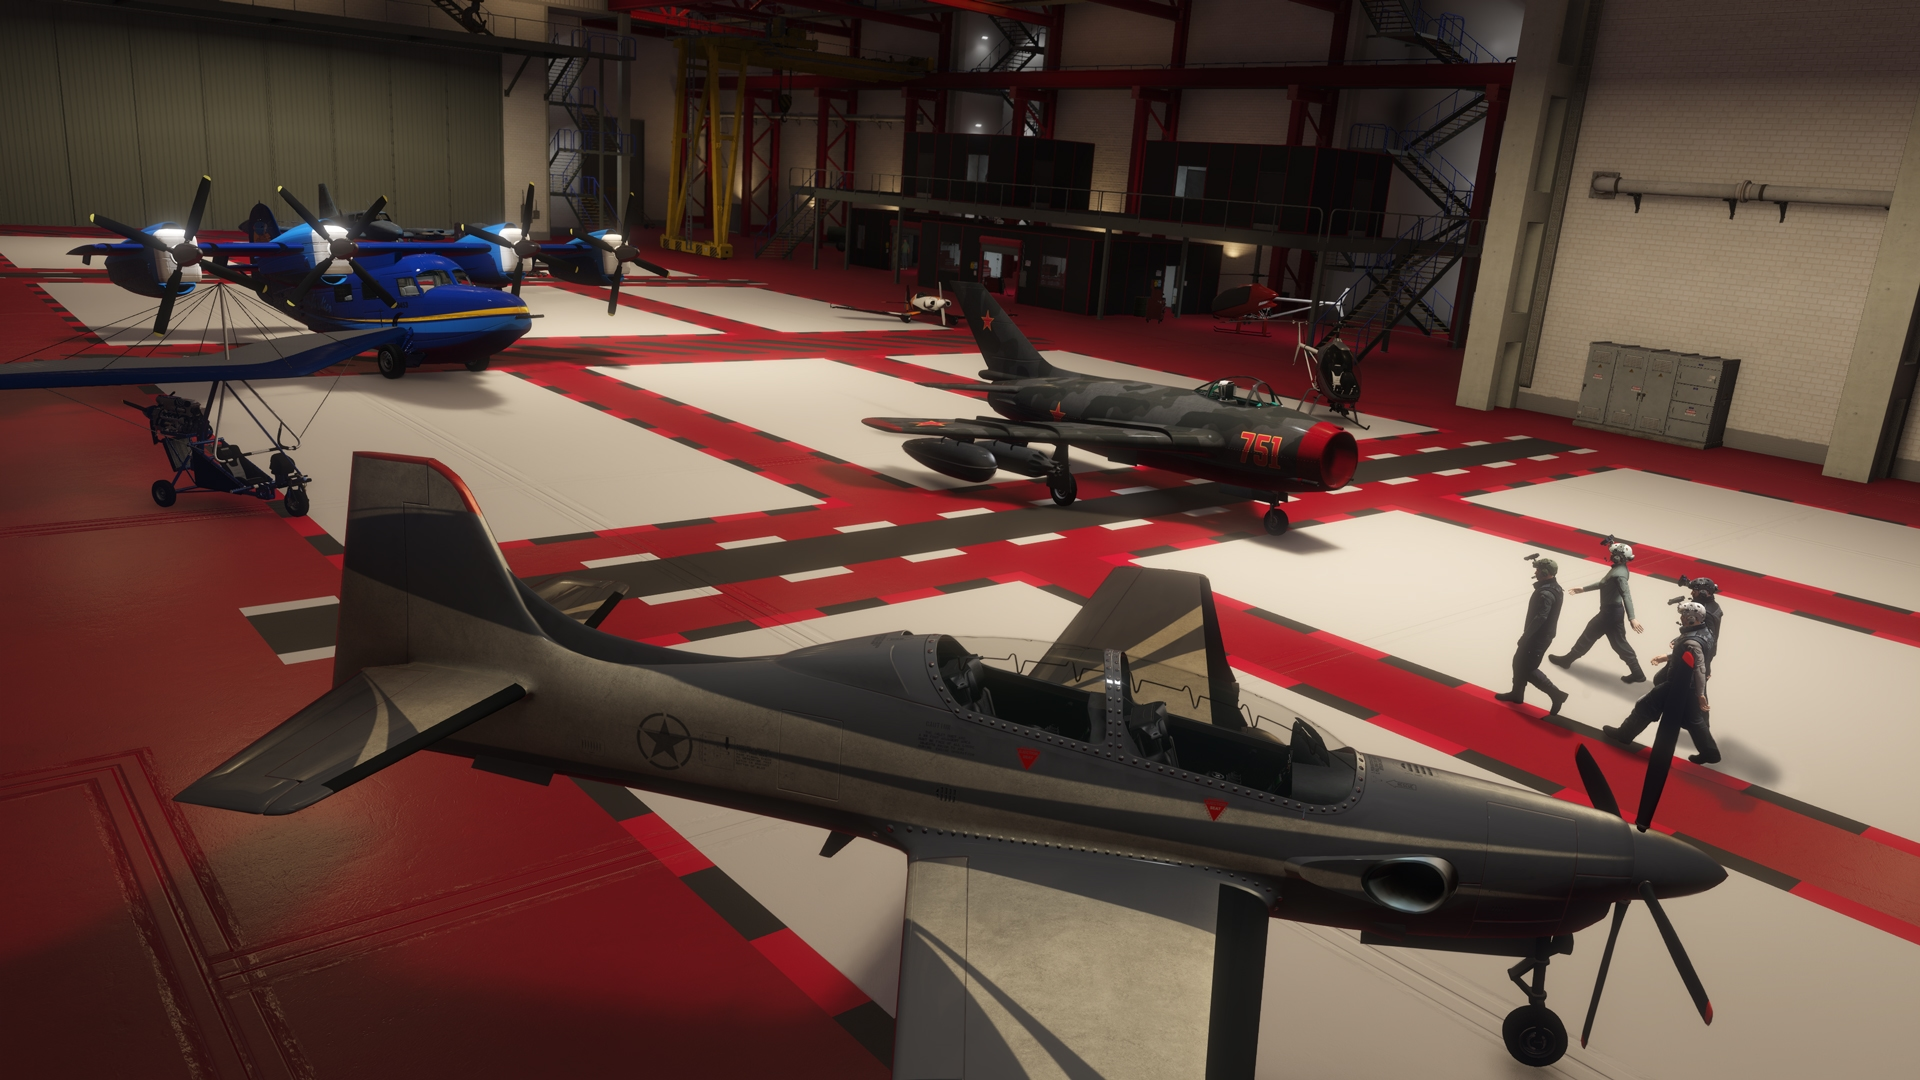 Next Up in GTA Online: Smuggler's Run - Watch the Trailer